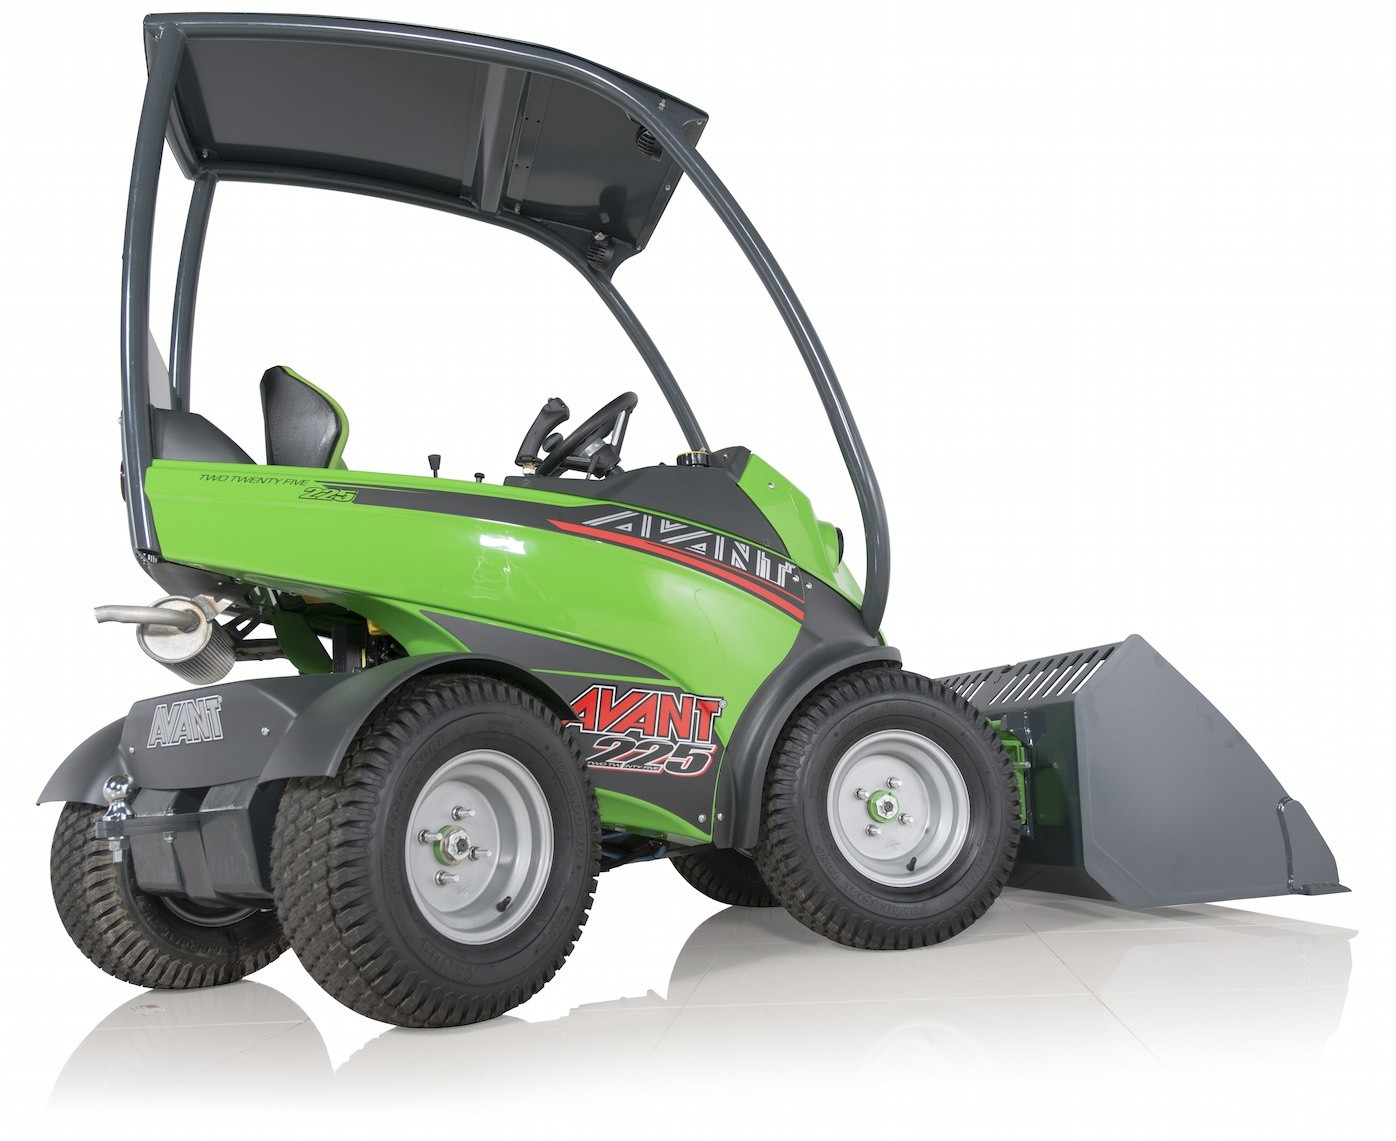 Avant Tecno presents new loader